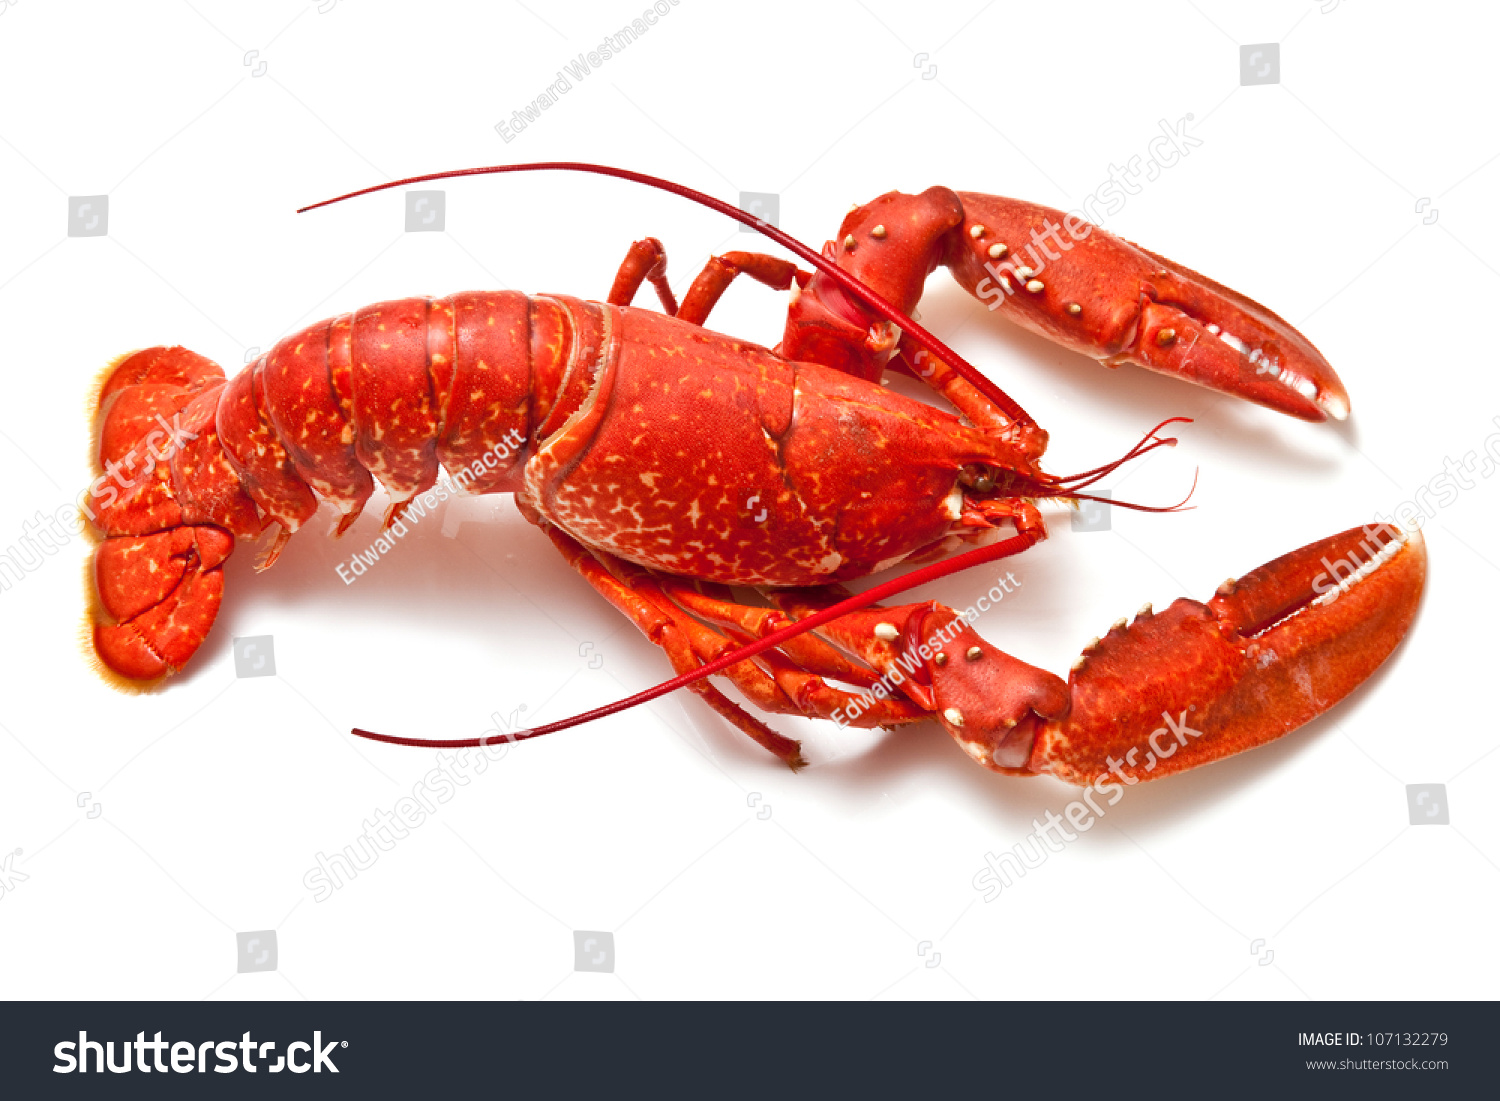 Cooked European Common Lobster Isolated On Stock Photo 107132279 - Shutterstock